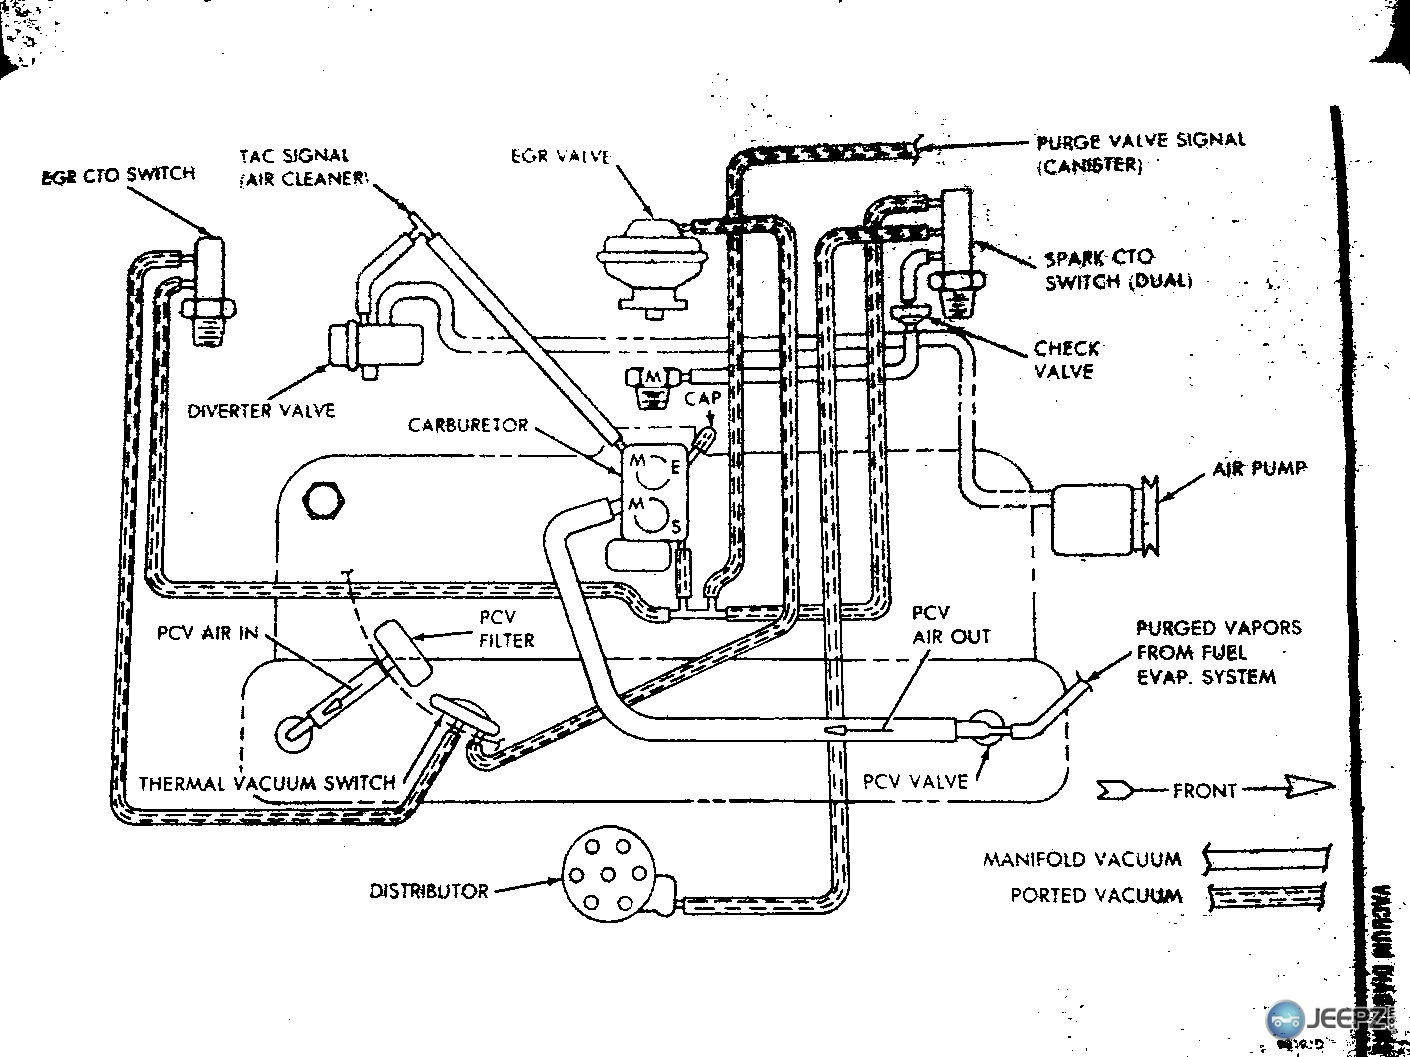 2001 Jeep Cherokee Vacuum Diagram Wiring Libraries Evap 4 2 Engine Third Leveljeep